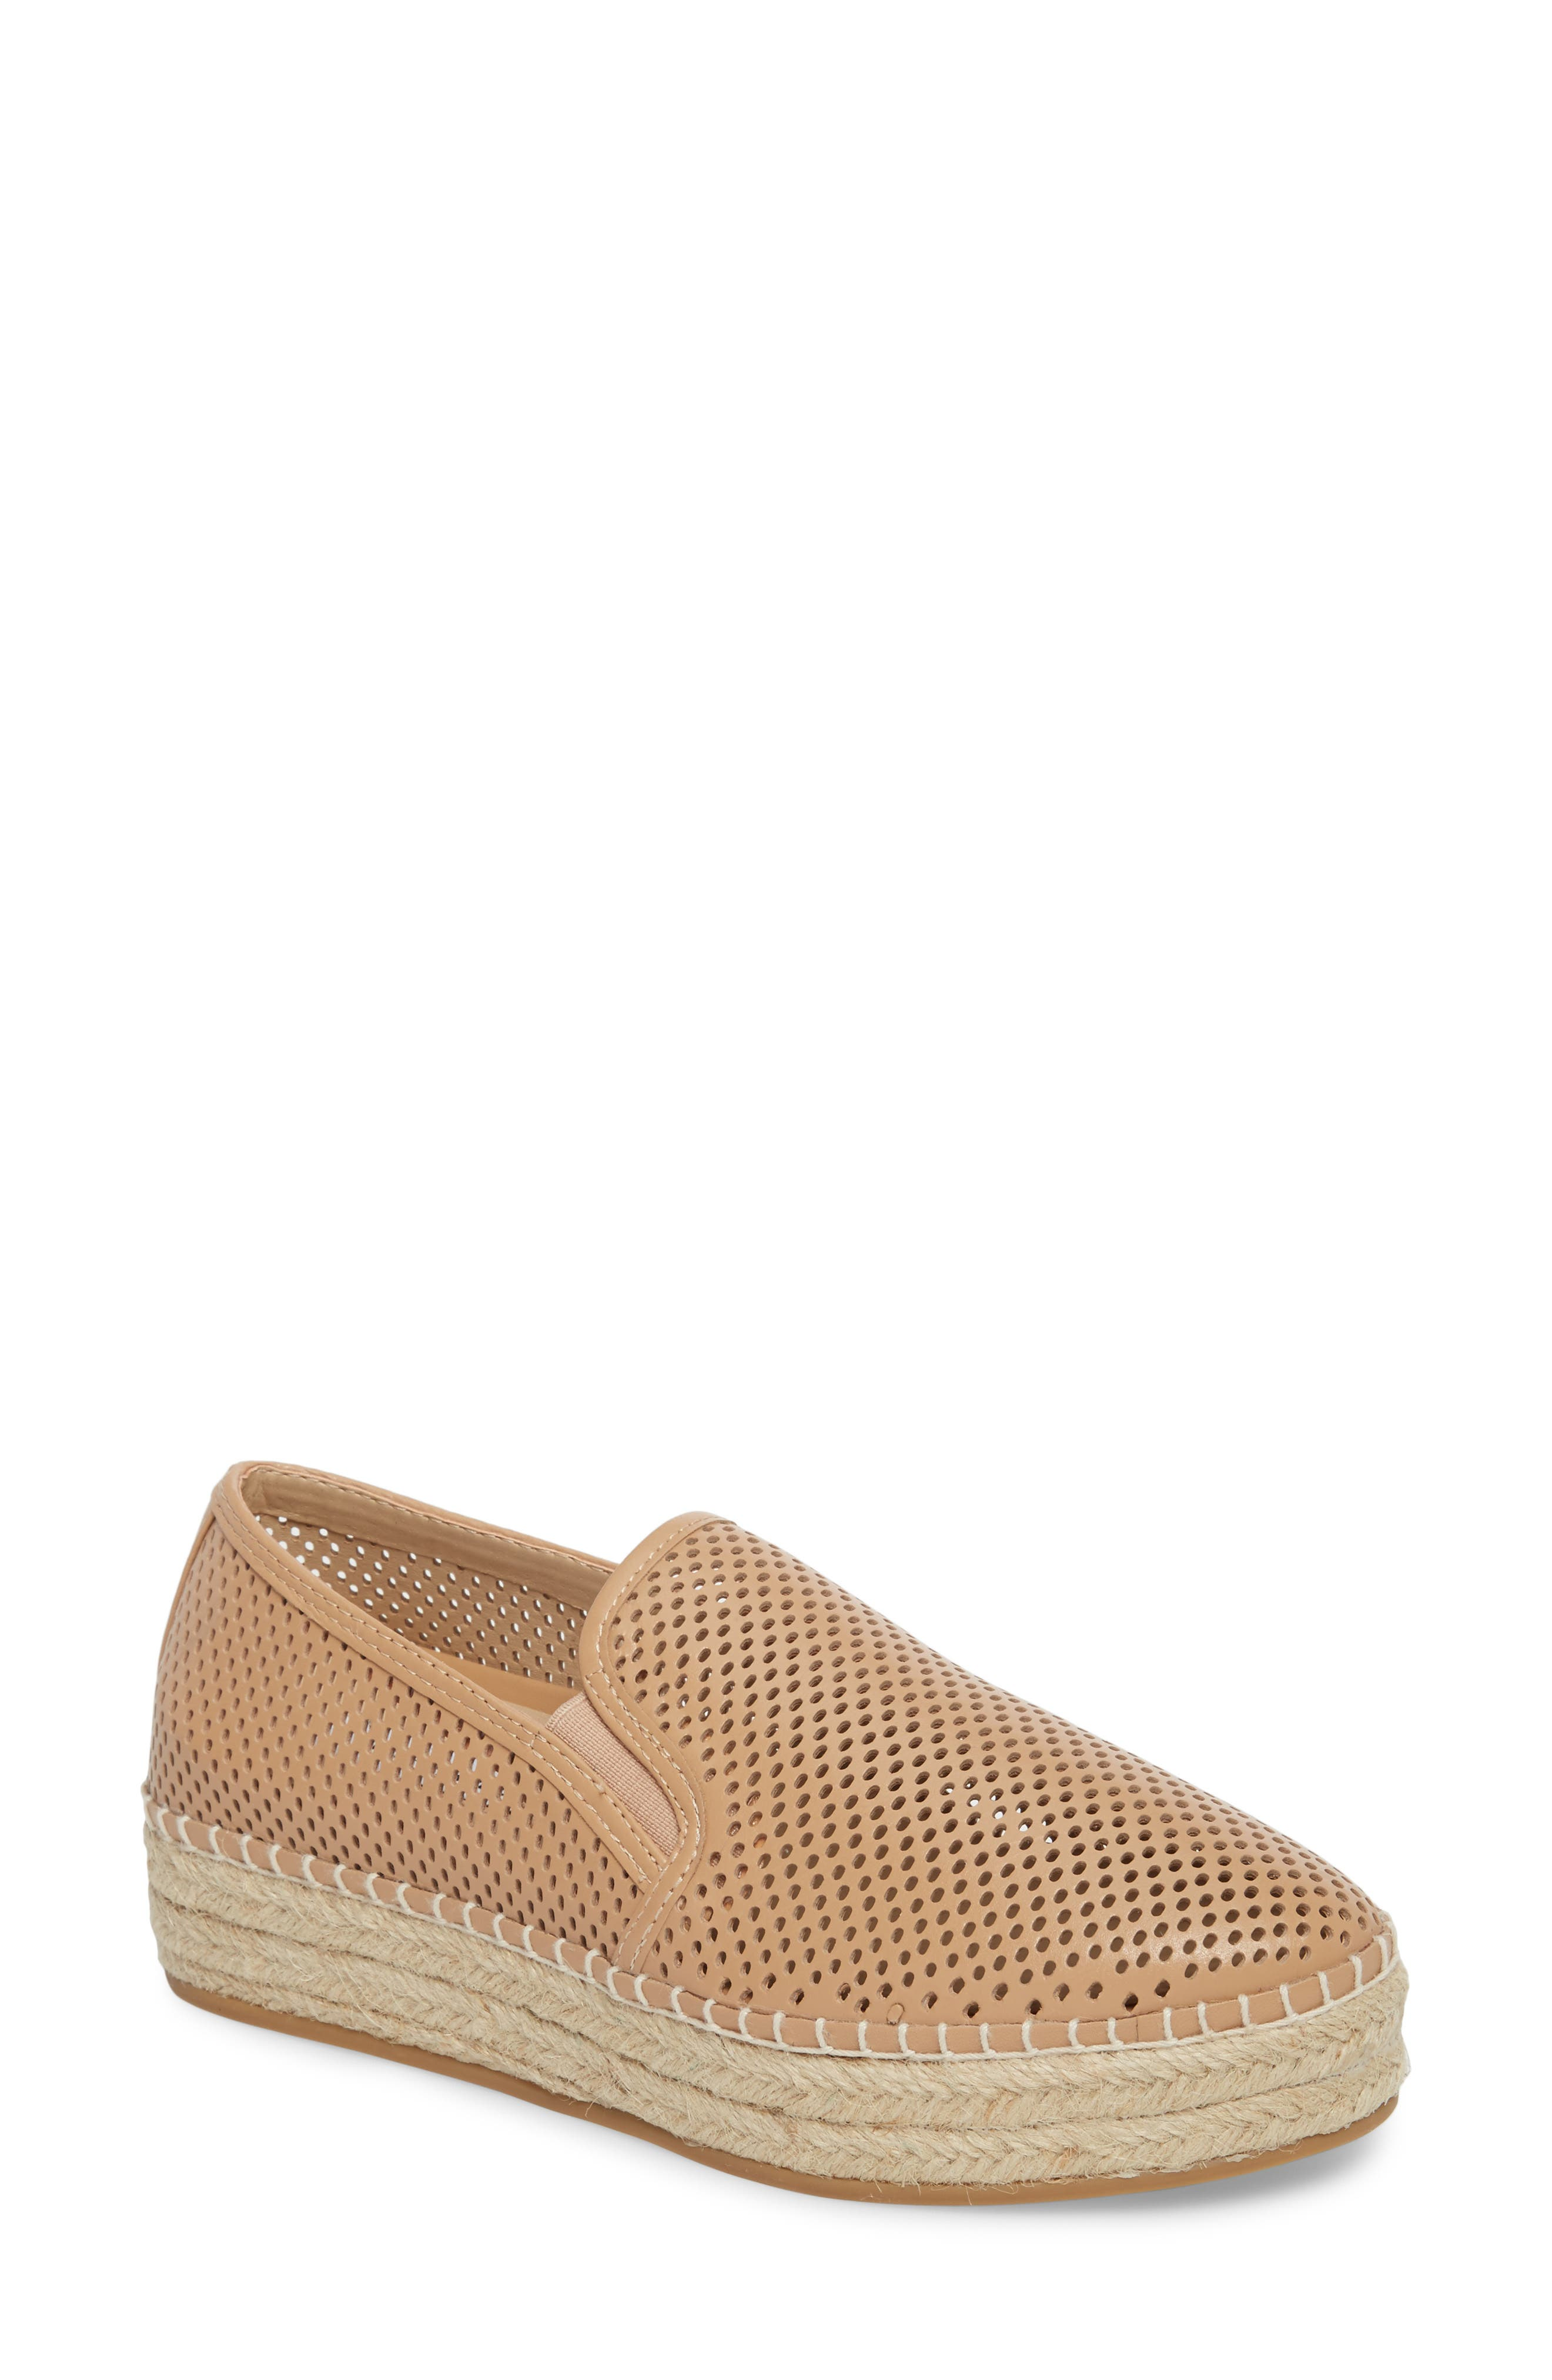 Wright Perforated Platform Espadrille,                         Main,                         color, Natural Leather